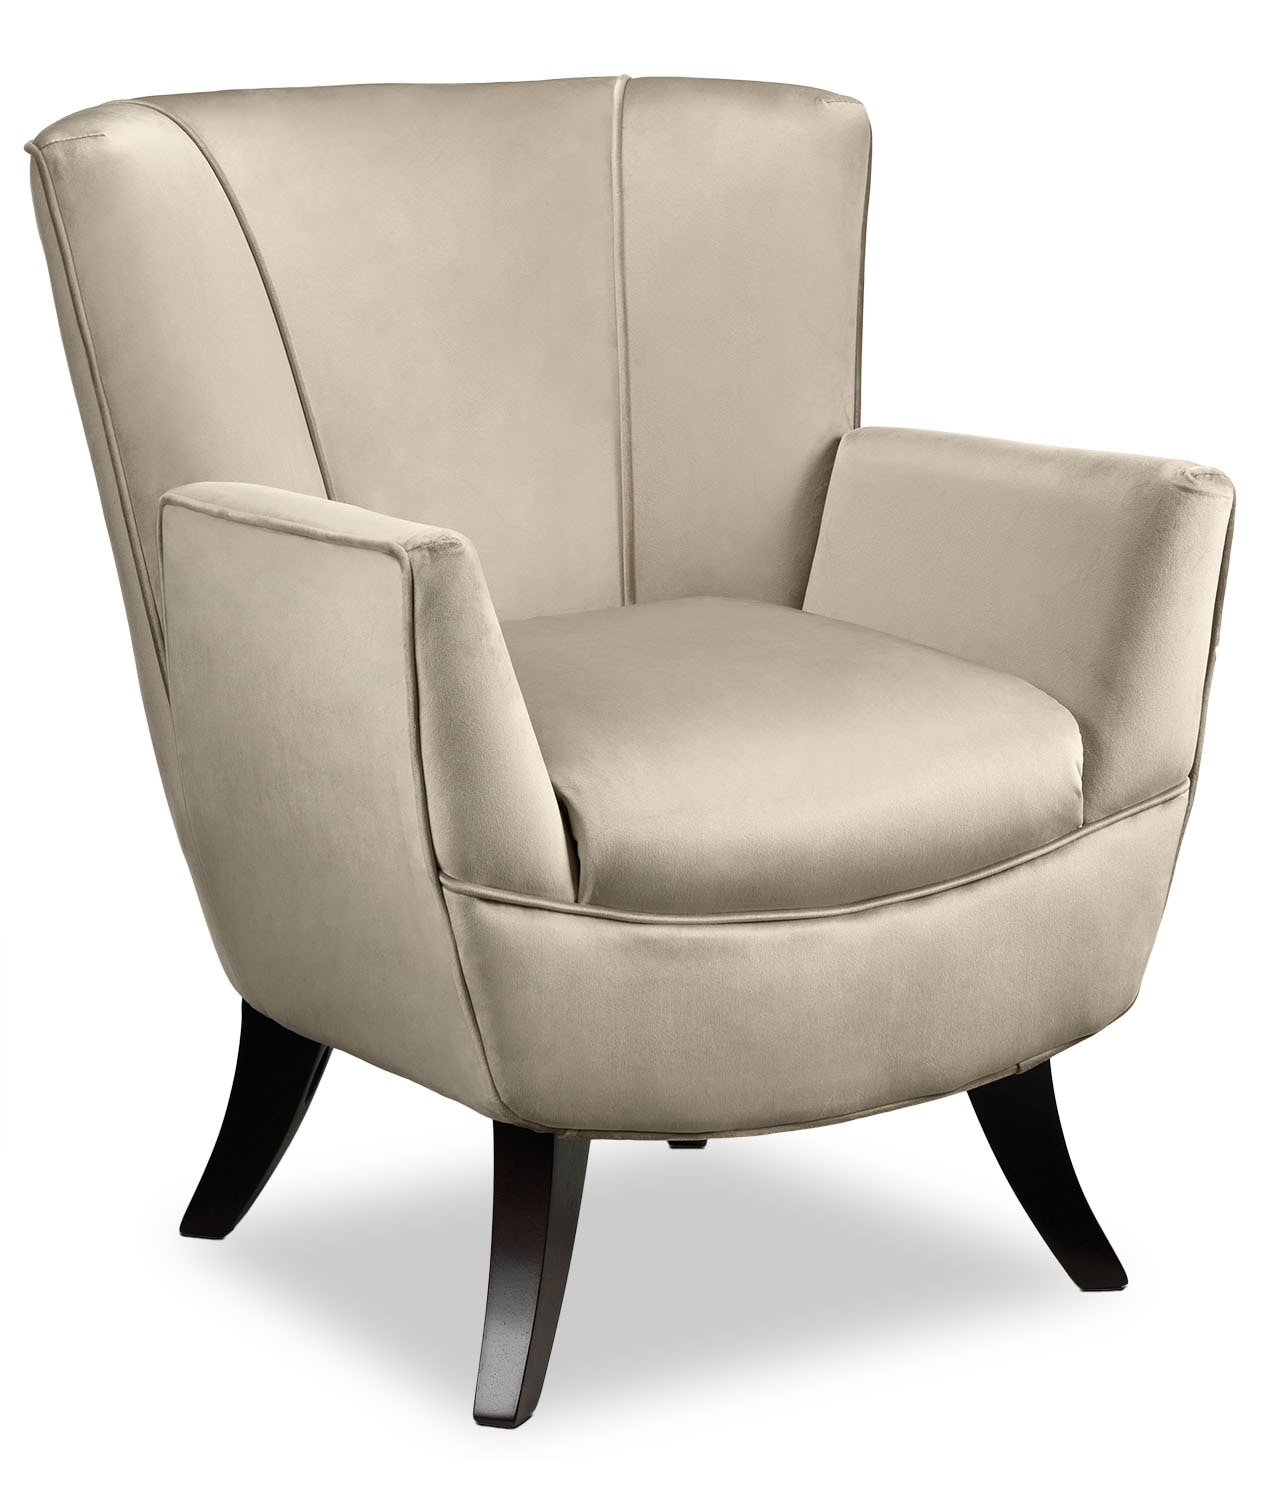 Accent and Occasional Furniture - Bethany Accent Chair - Beige